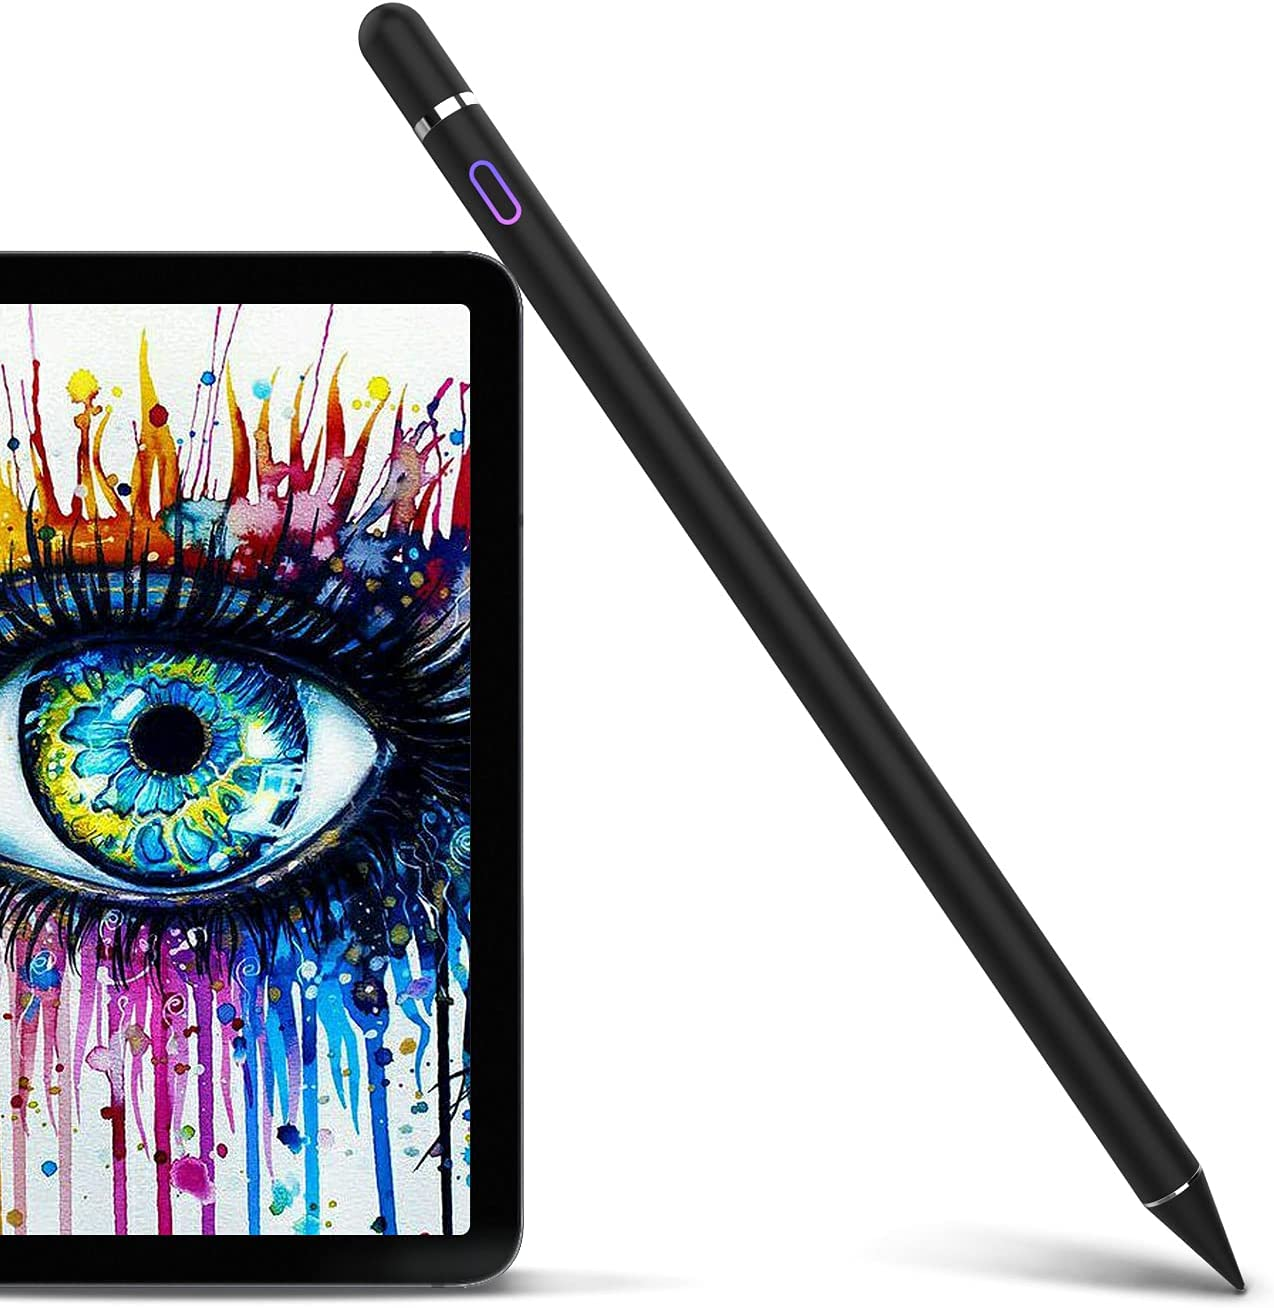 Stylus Pen Compatible with iPad, Pencil Styluses Compatible with iPad 2/3/4/5/6/7/8 Generation Pro 9.7/10.5/11/12.9 Air 1/2/3/4 Mini 1/2/3/4/5 Alternative Drawing Stylist for Touch Screens (Black)